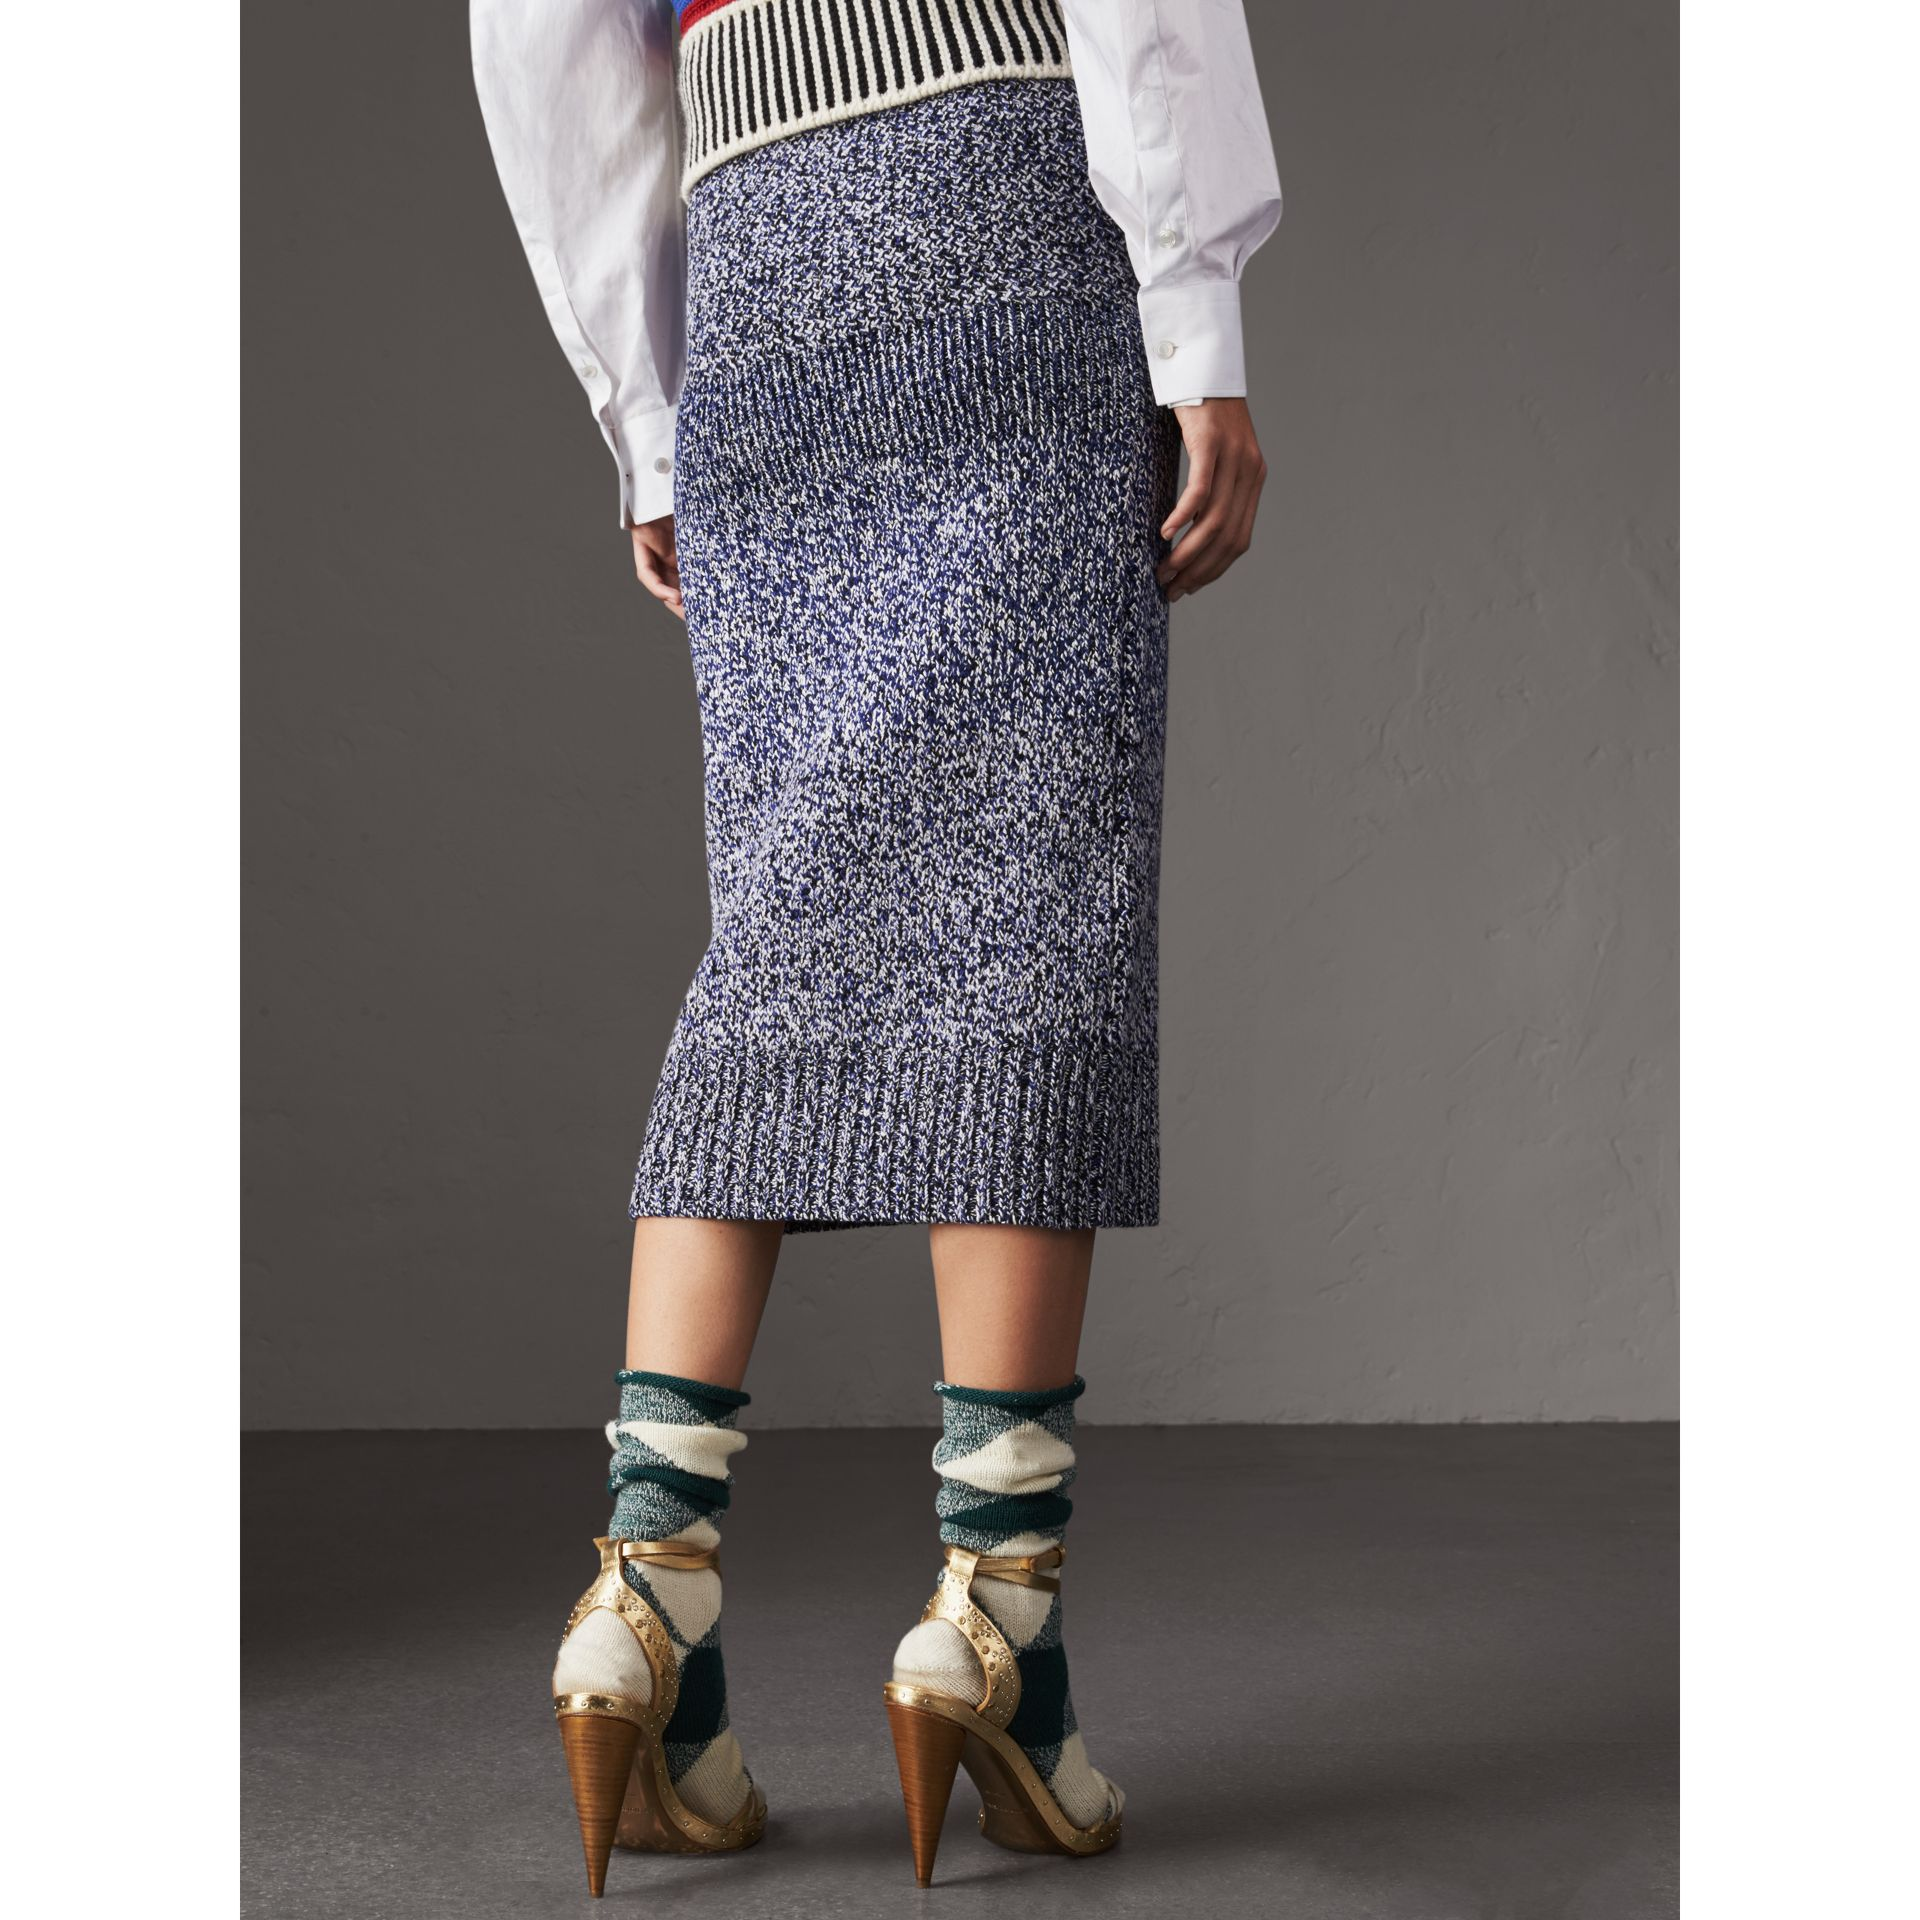 Cashmere Cotton Wool Blend Mouliné Skirt in Bright Navy/black - Women | Burberry - gallery image 2